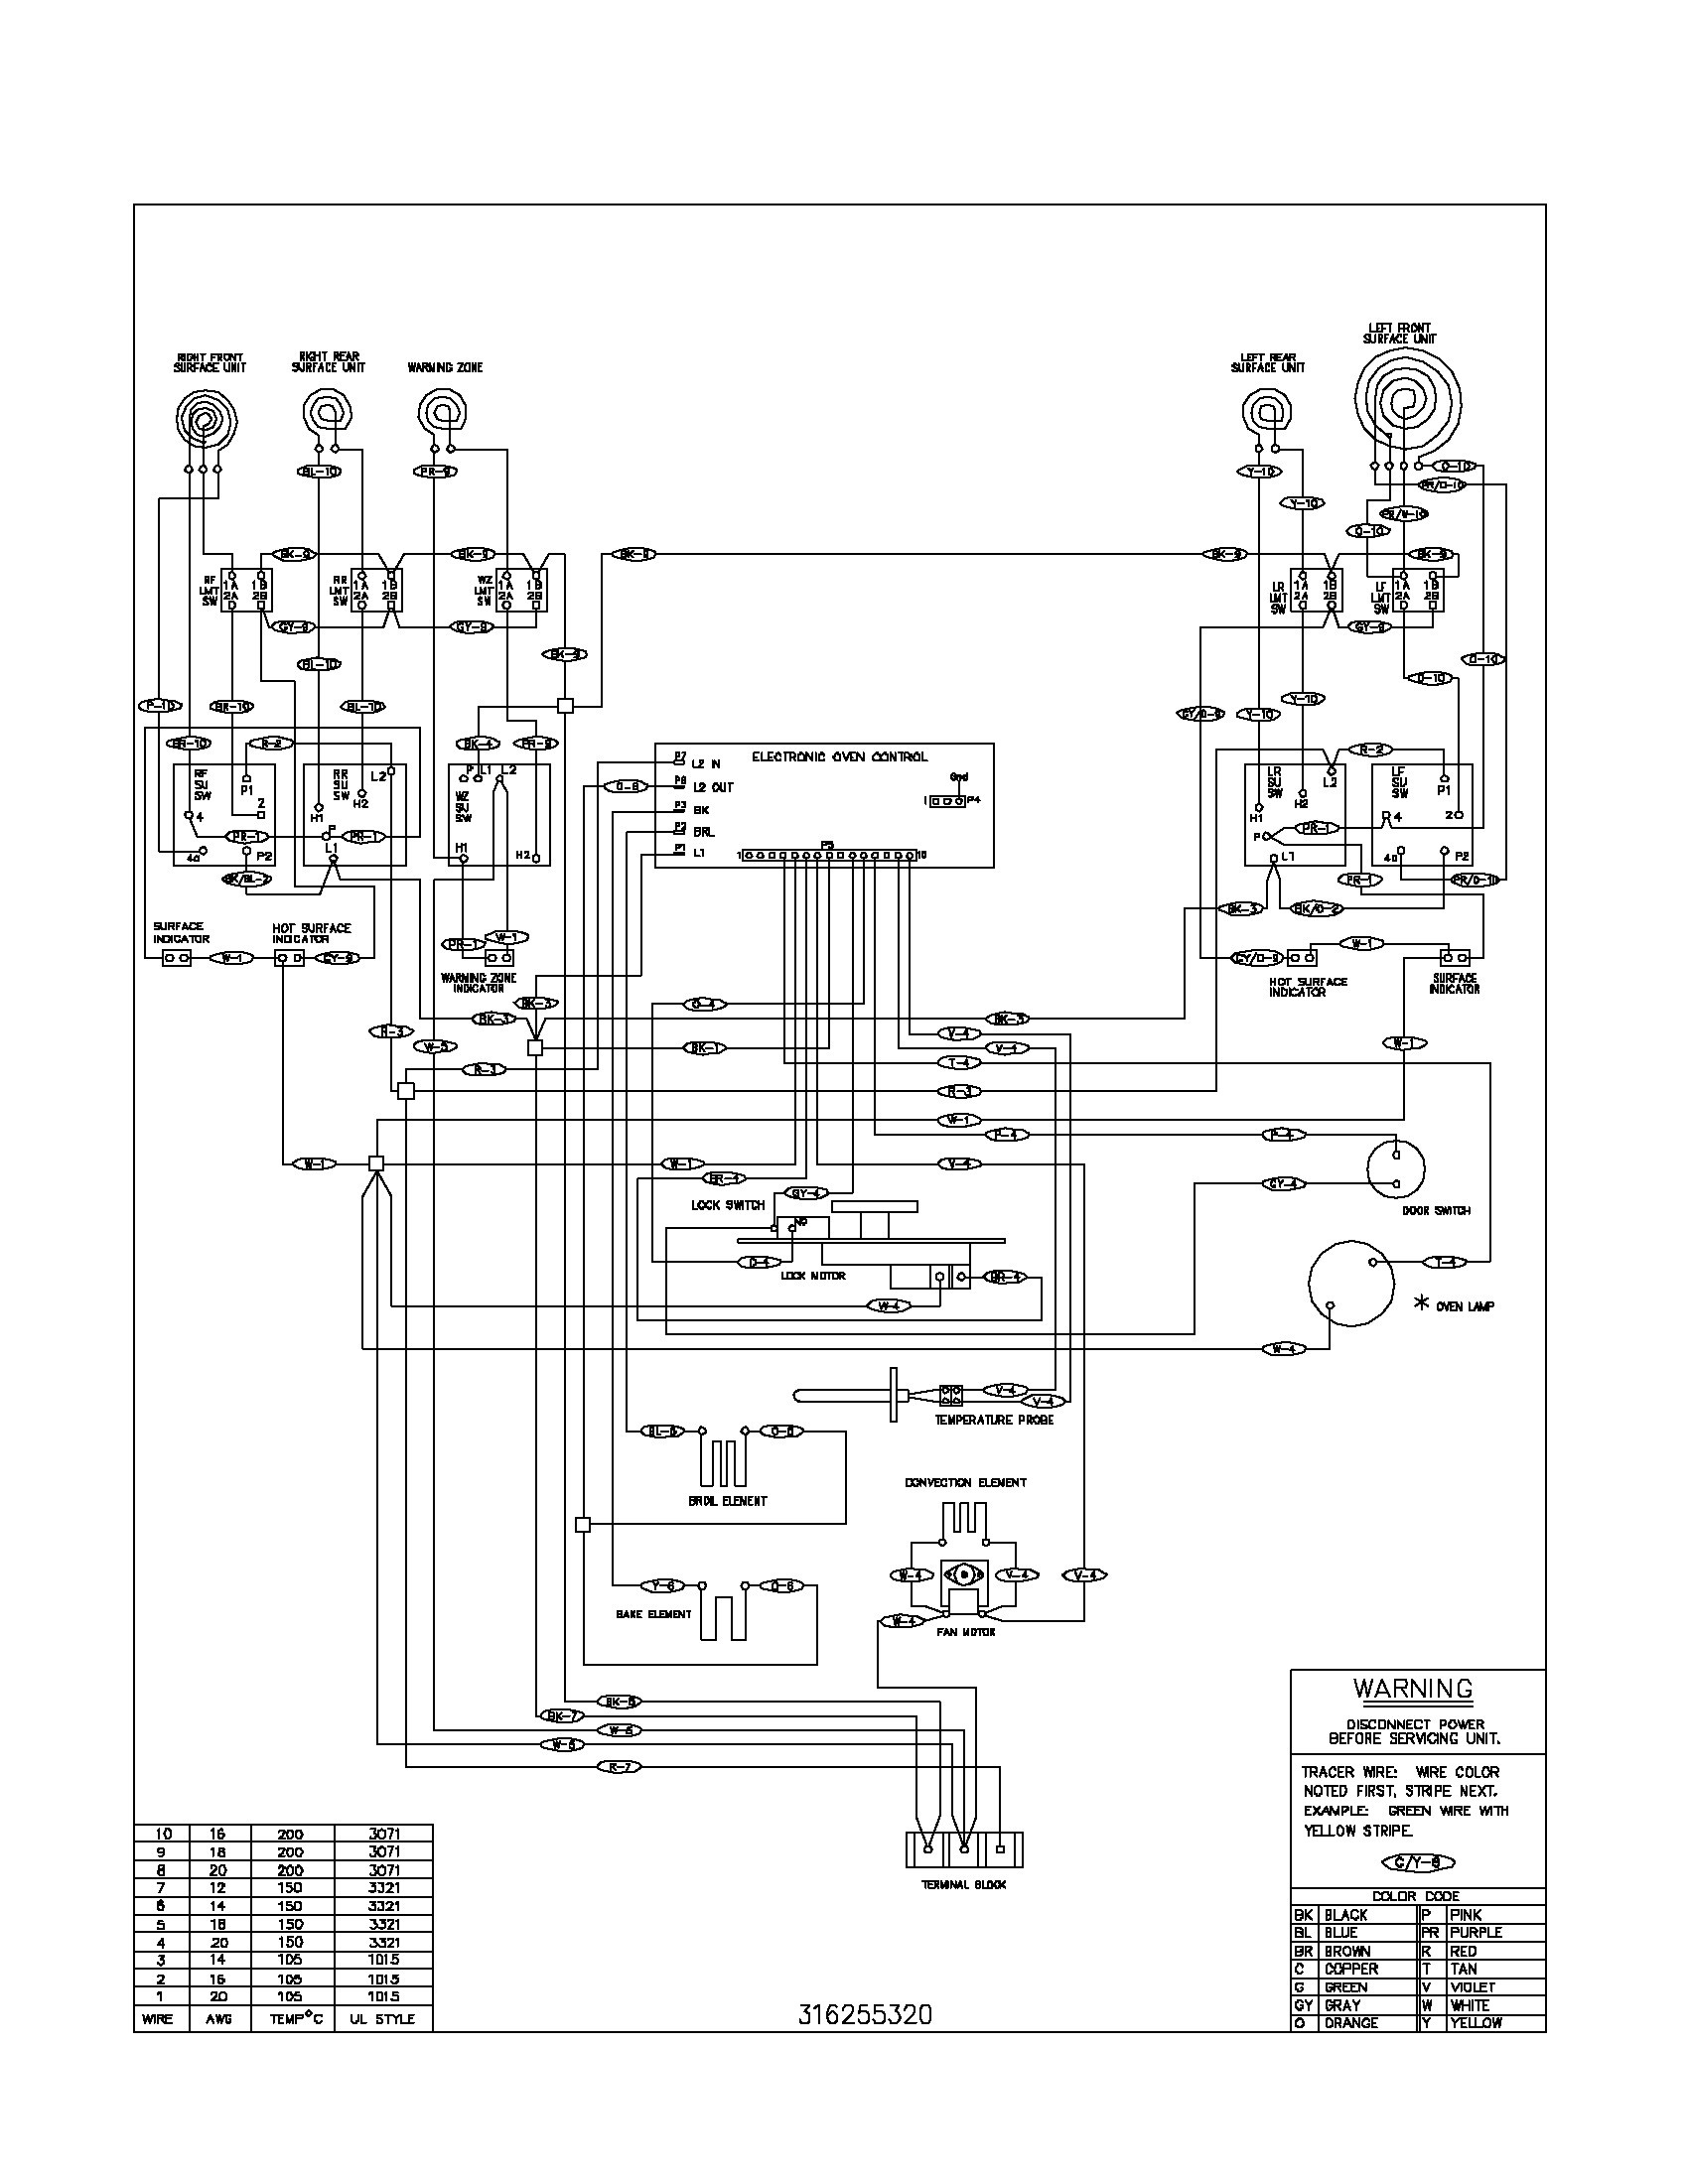 Maytag Stove Element Wiring Diagram - Wiring Diagram Local on ac wiring to house, ac wiring color, ac wiring diagram, ac transformers basics, ac electricity basics, ac wiring circuits, ac power distribution basics, ac home wiring, ac generator basics, ac motor basics,